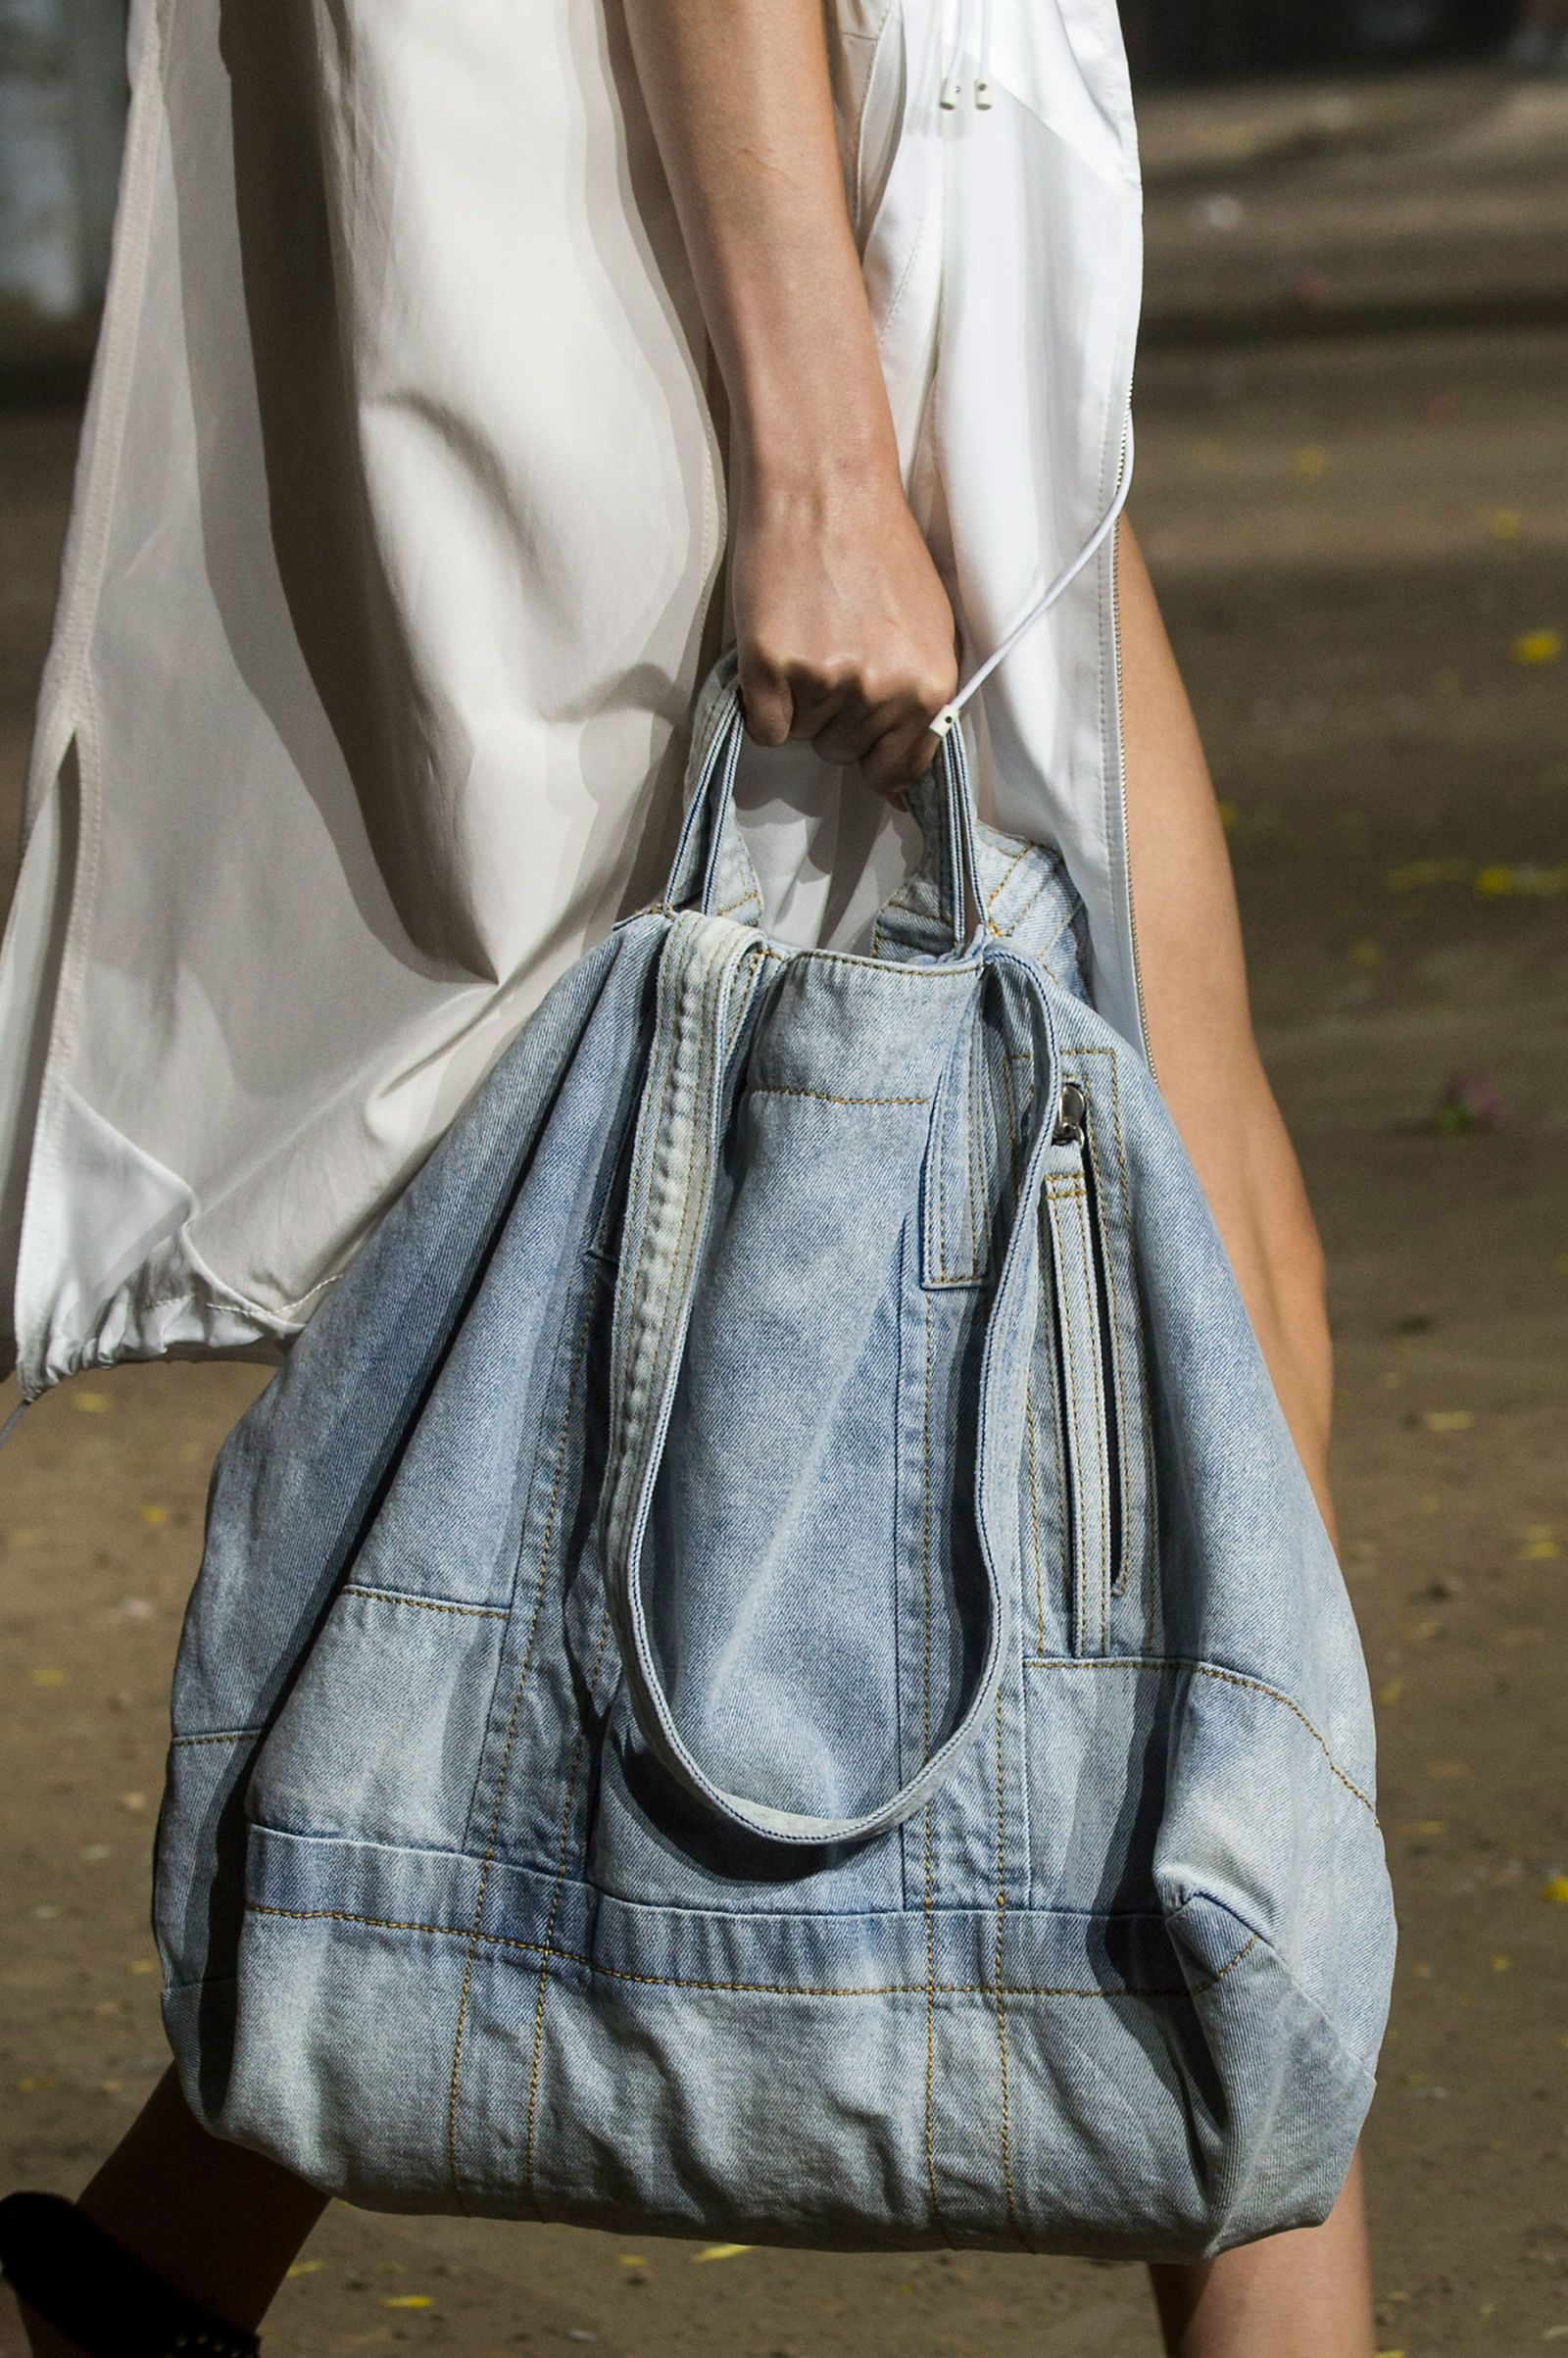 628ff073d5cf Spring 2017 Bag Trends From Runway - Best Spring and Summer Handbags